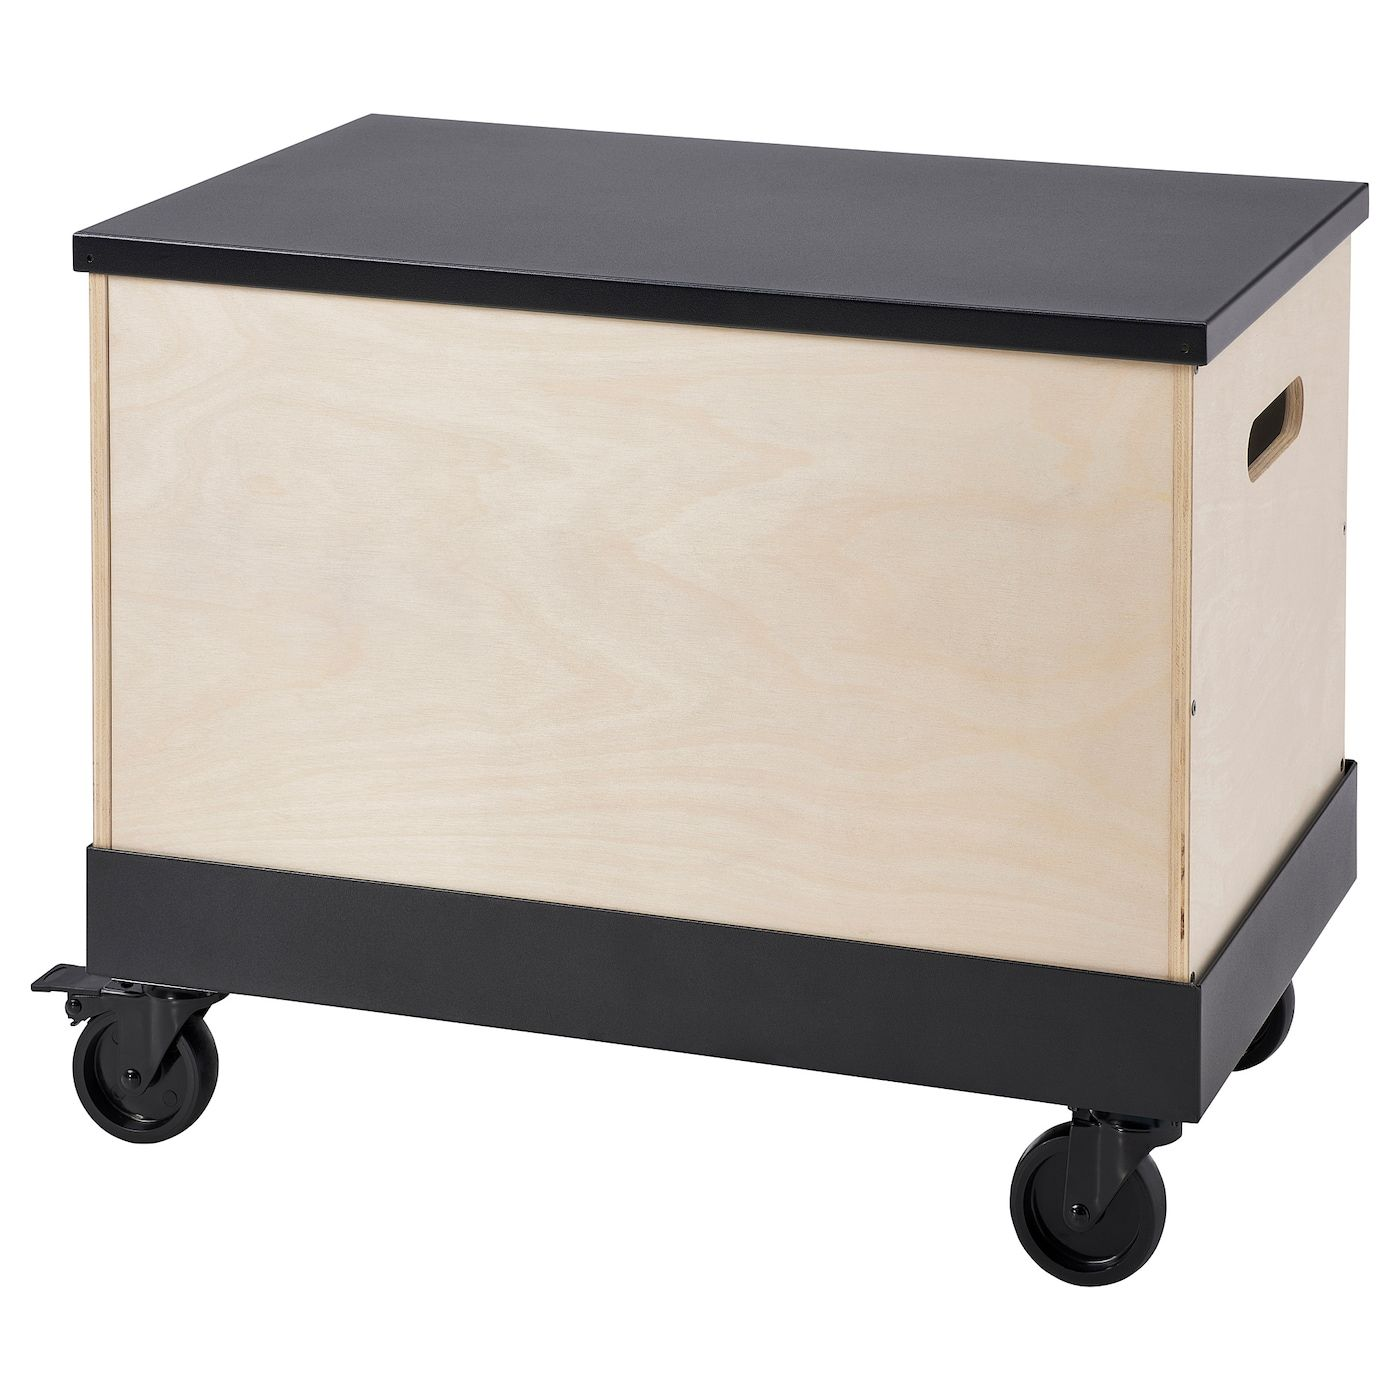 Ikea Ravaror Coffee Side Table On Casters Birch Plywood Black Suitable Throughout The Home To Use E G As A Coffee Table Ikea Birch Plywood Table Storage [ 1400 x 1400 Pixel ]